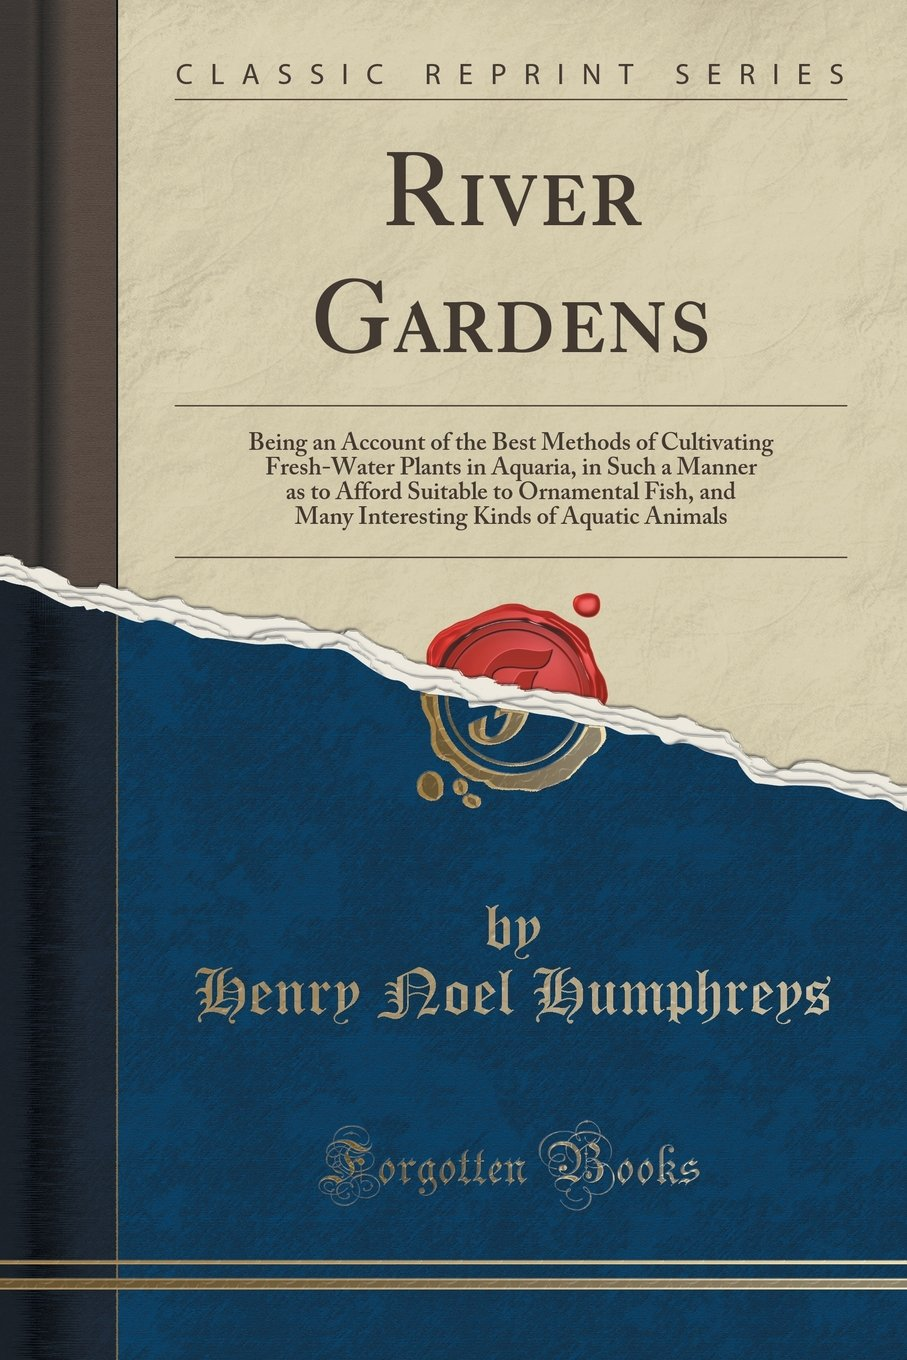 River Gardens: Being an Account of the Best Methods of Cultivating Fresh-Water Plants in Aquaria, in Such a Manner as to Afford Suitable to Ornamental ... Kinds of Aquatic Animals (Classic Reprint) pdf epub